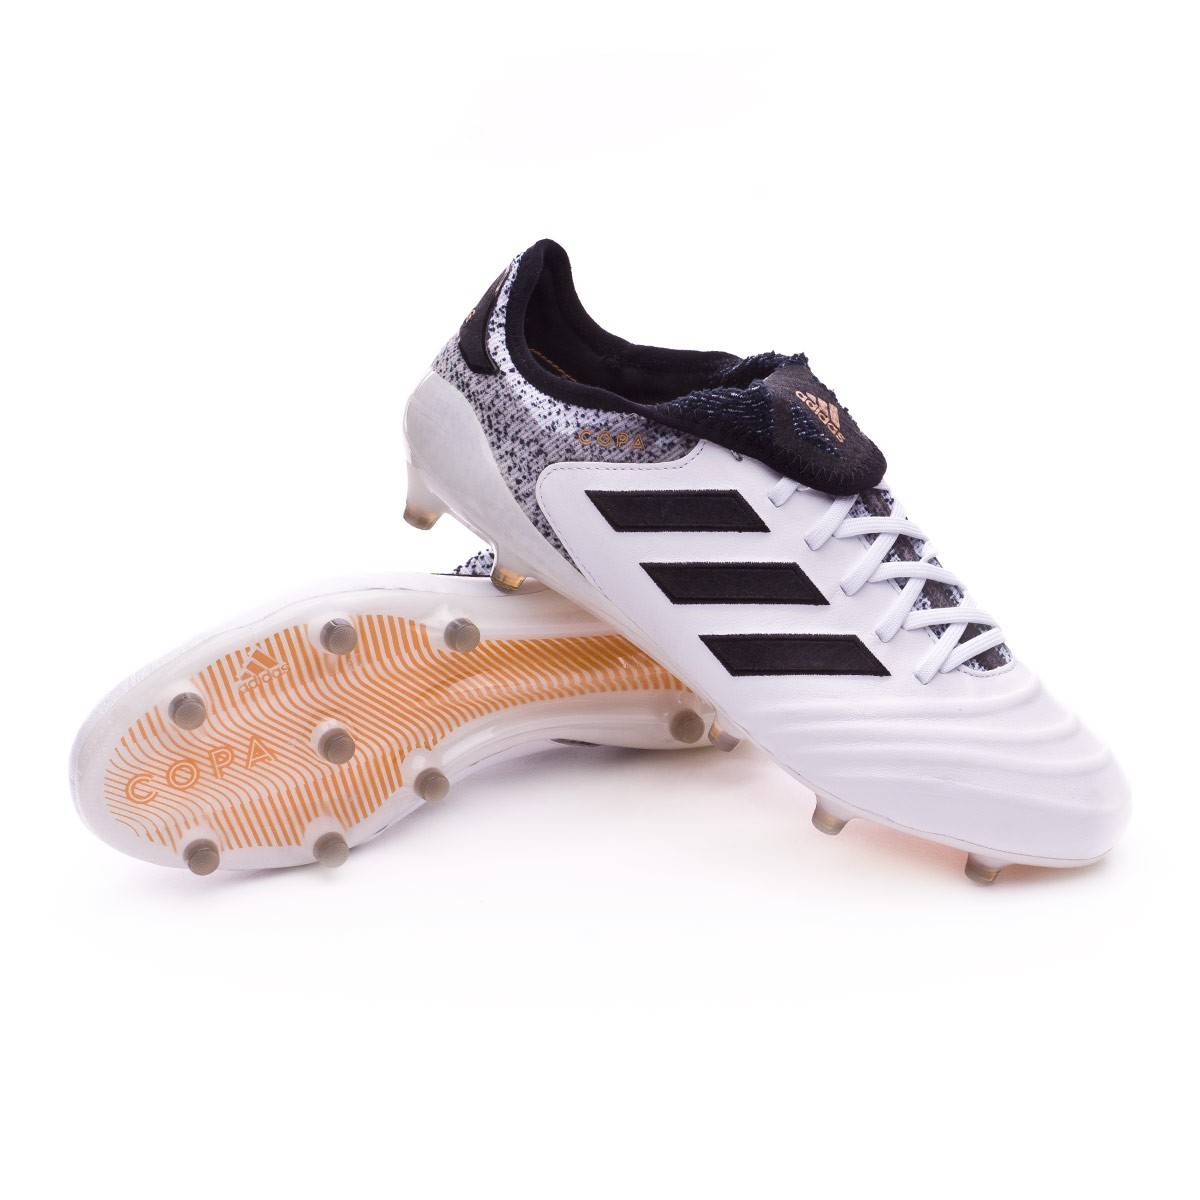 5658965bf98 Football Boots adidas Copa 18.1 FG White-Core black-Tactile gold ...